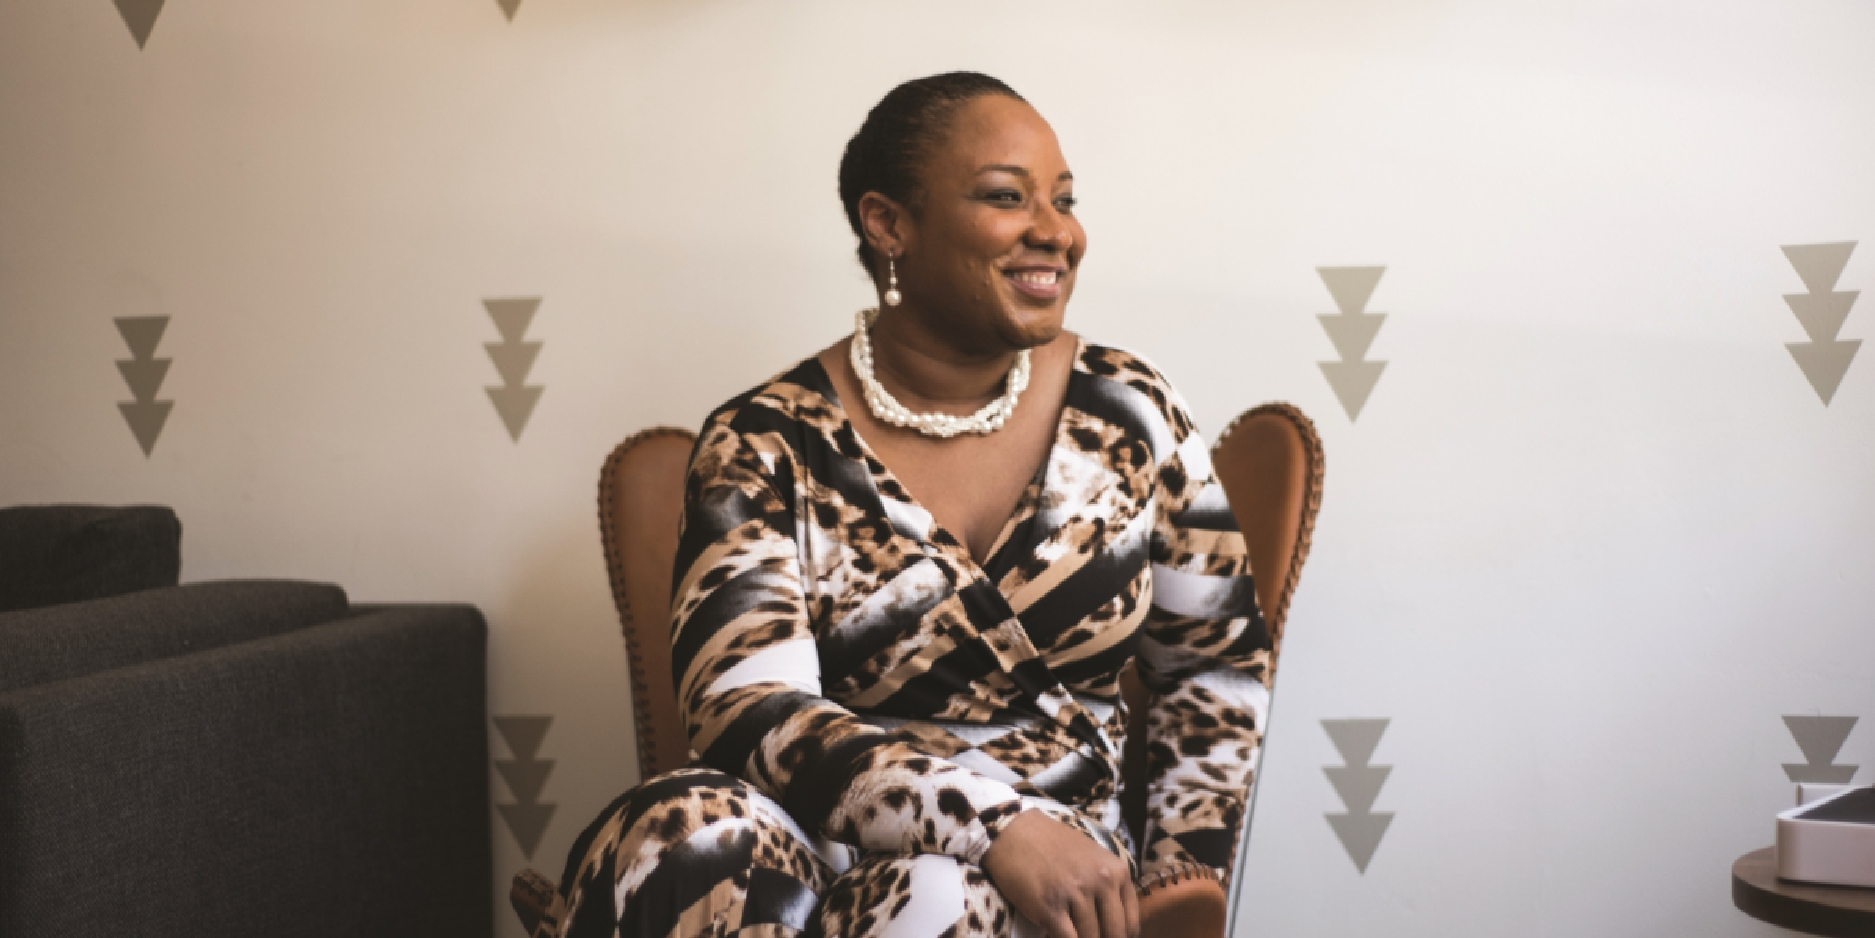 Lingerie Entrepreneur Shares How Coaching and Hustlenomics Helped Her Business